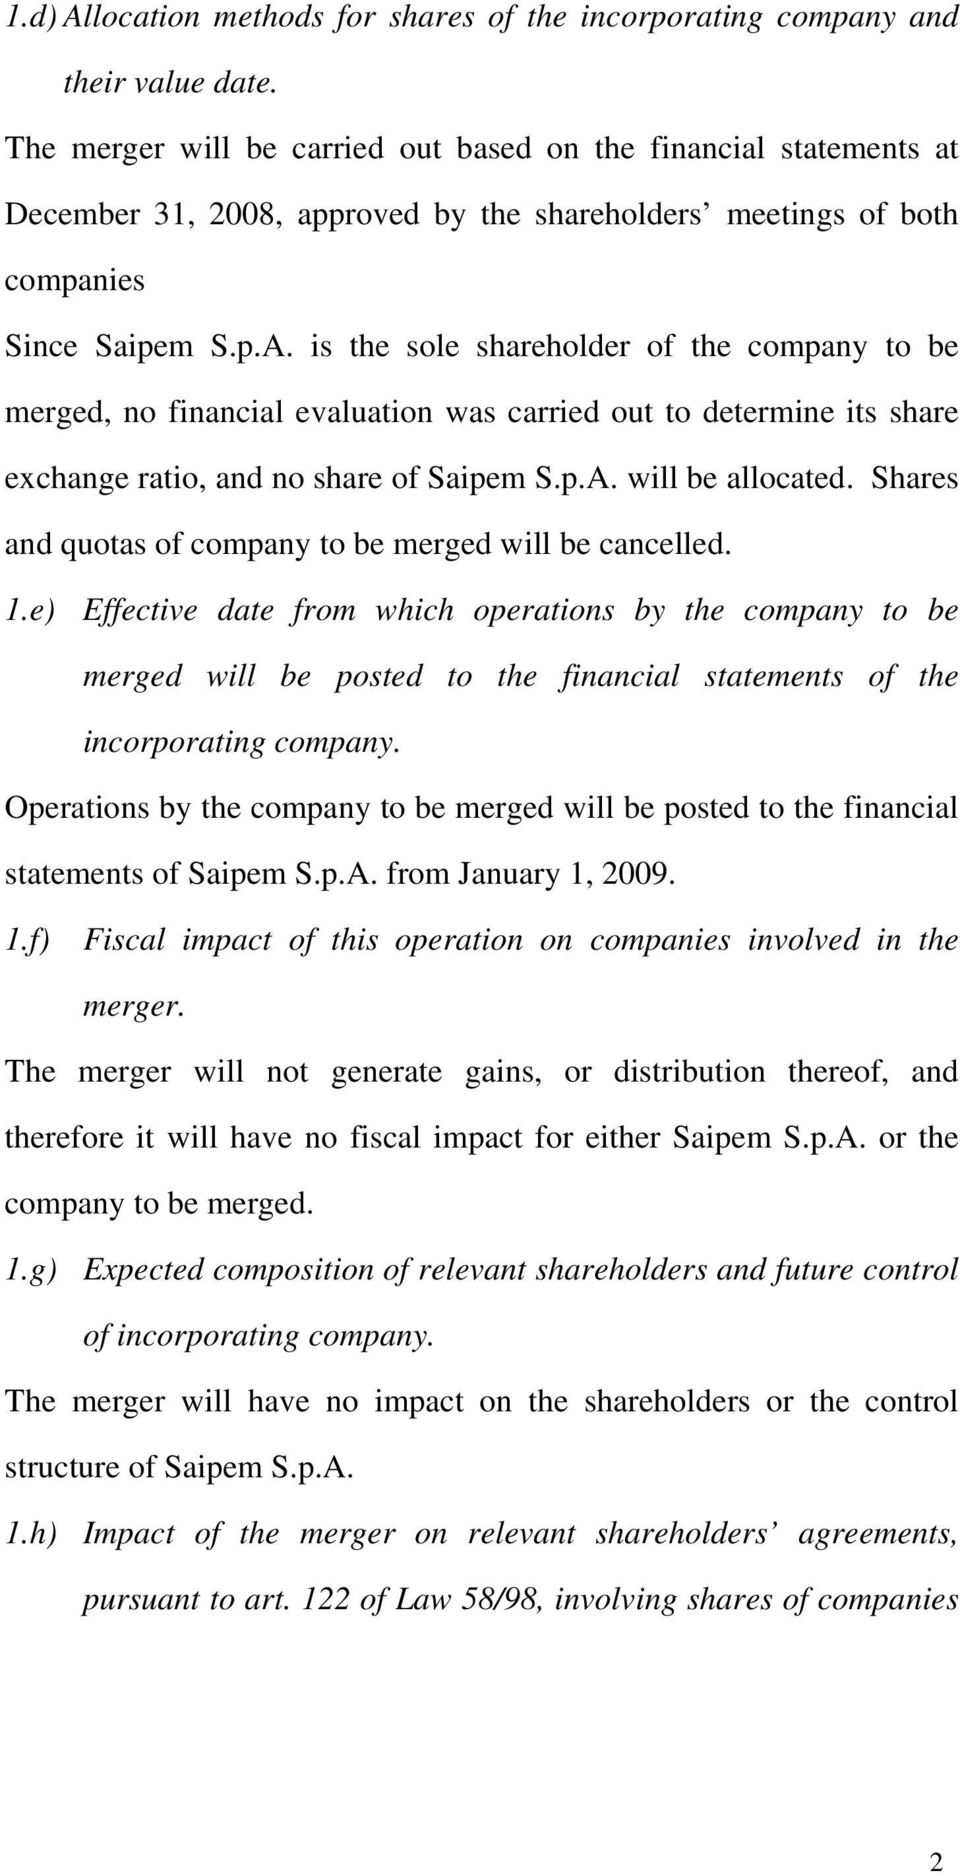 is the sole shareholder of the company to be merged, no financial evaluation was carried out to determine its share exchange ratio, and no share of Saipem S.p.A. will be allocated.